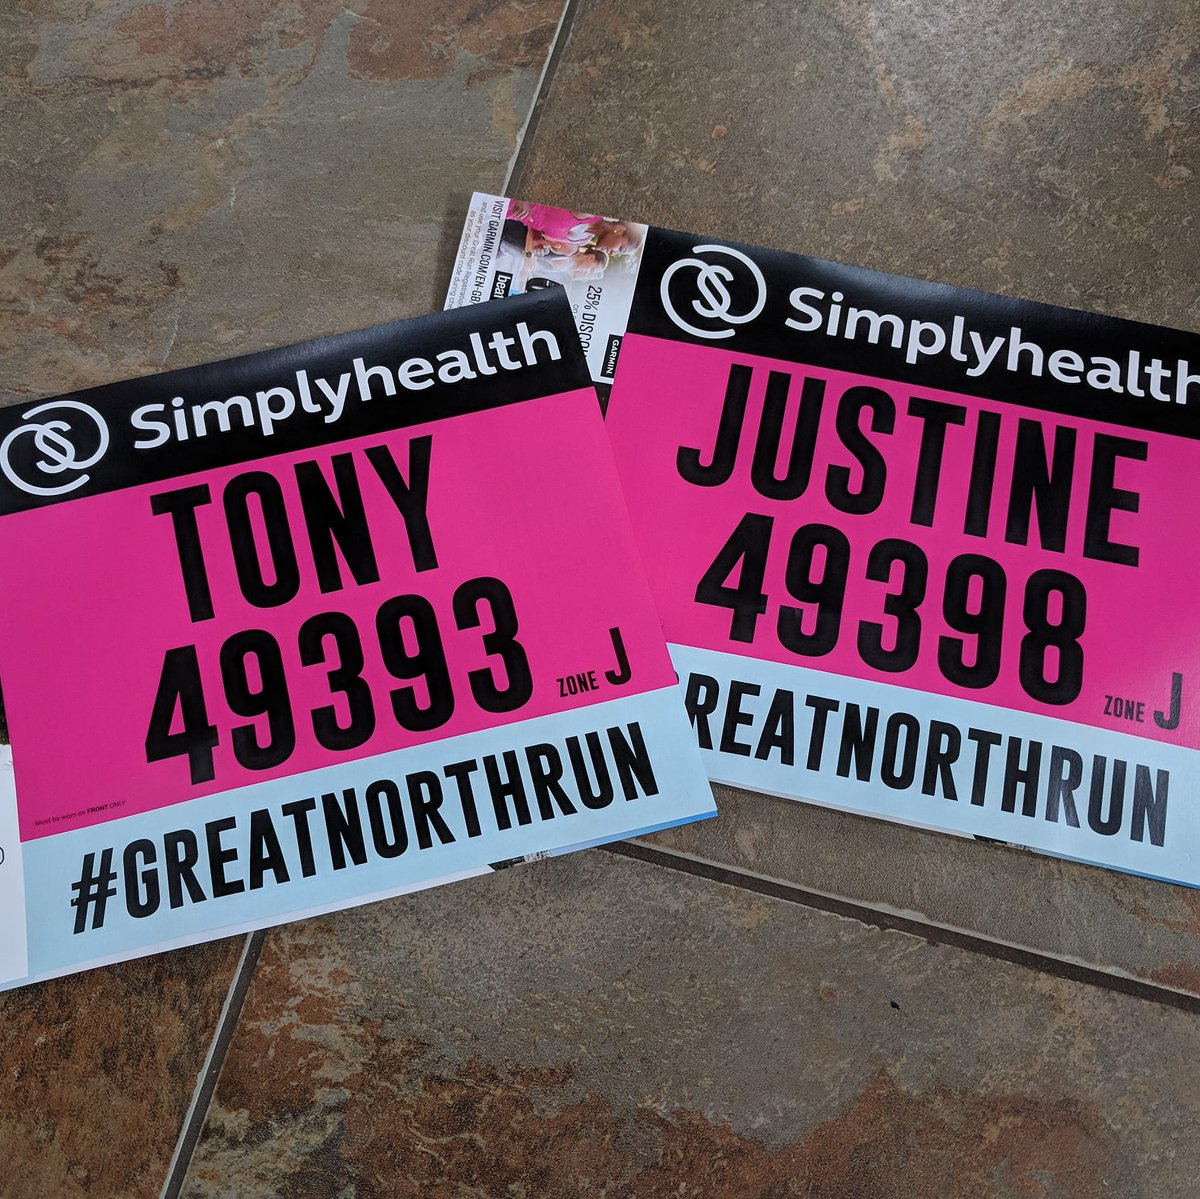 Nearly 3 years ago Tony & Justine were caught in the Bataclan terror attack.  Next Sunday they'll be doing the #GreatNorthRun for NAMT in memory of Nick and all 89 victims.  Pls show https://t.co/Y6lBcAZd6s some support with love, RT's, spotify playlists and cash monies ❤️⚡️ https://t.co/TVTKIzgwZZ